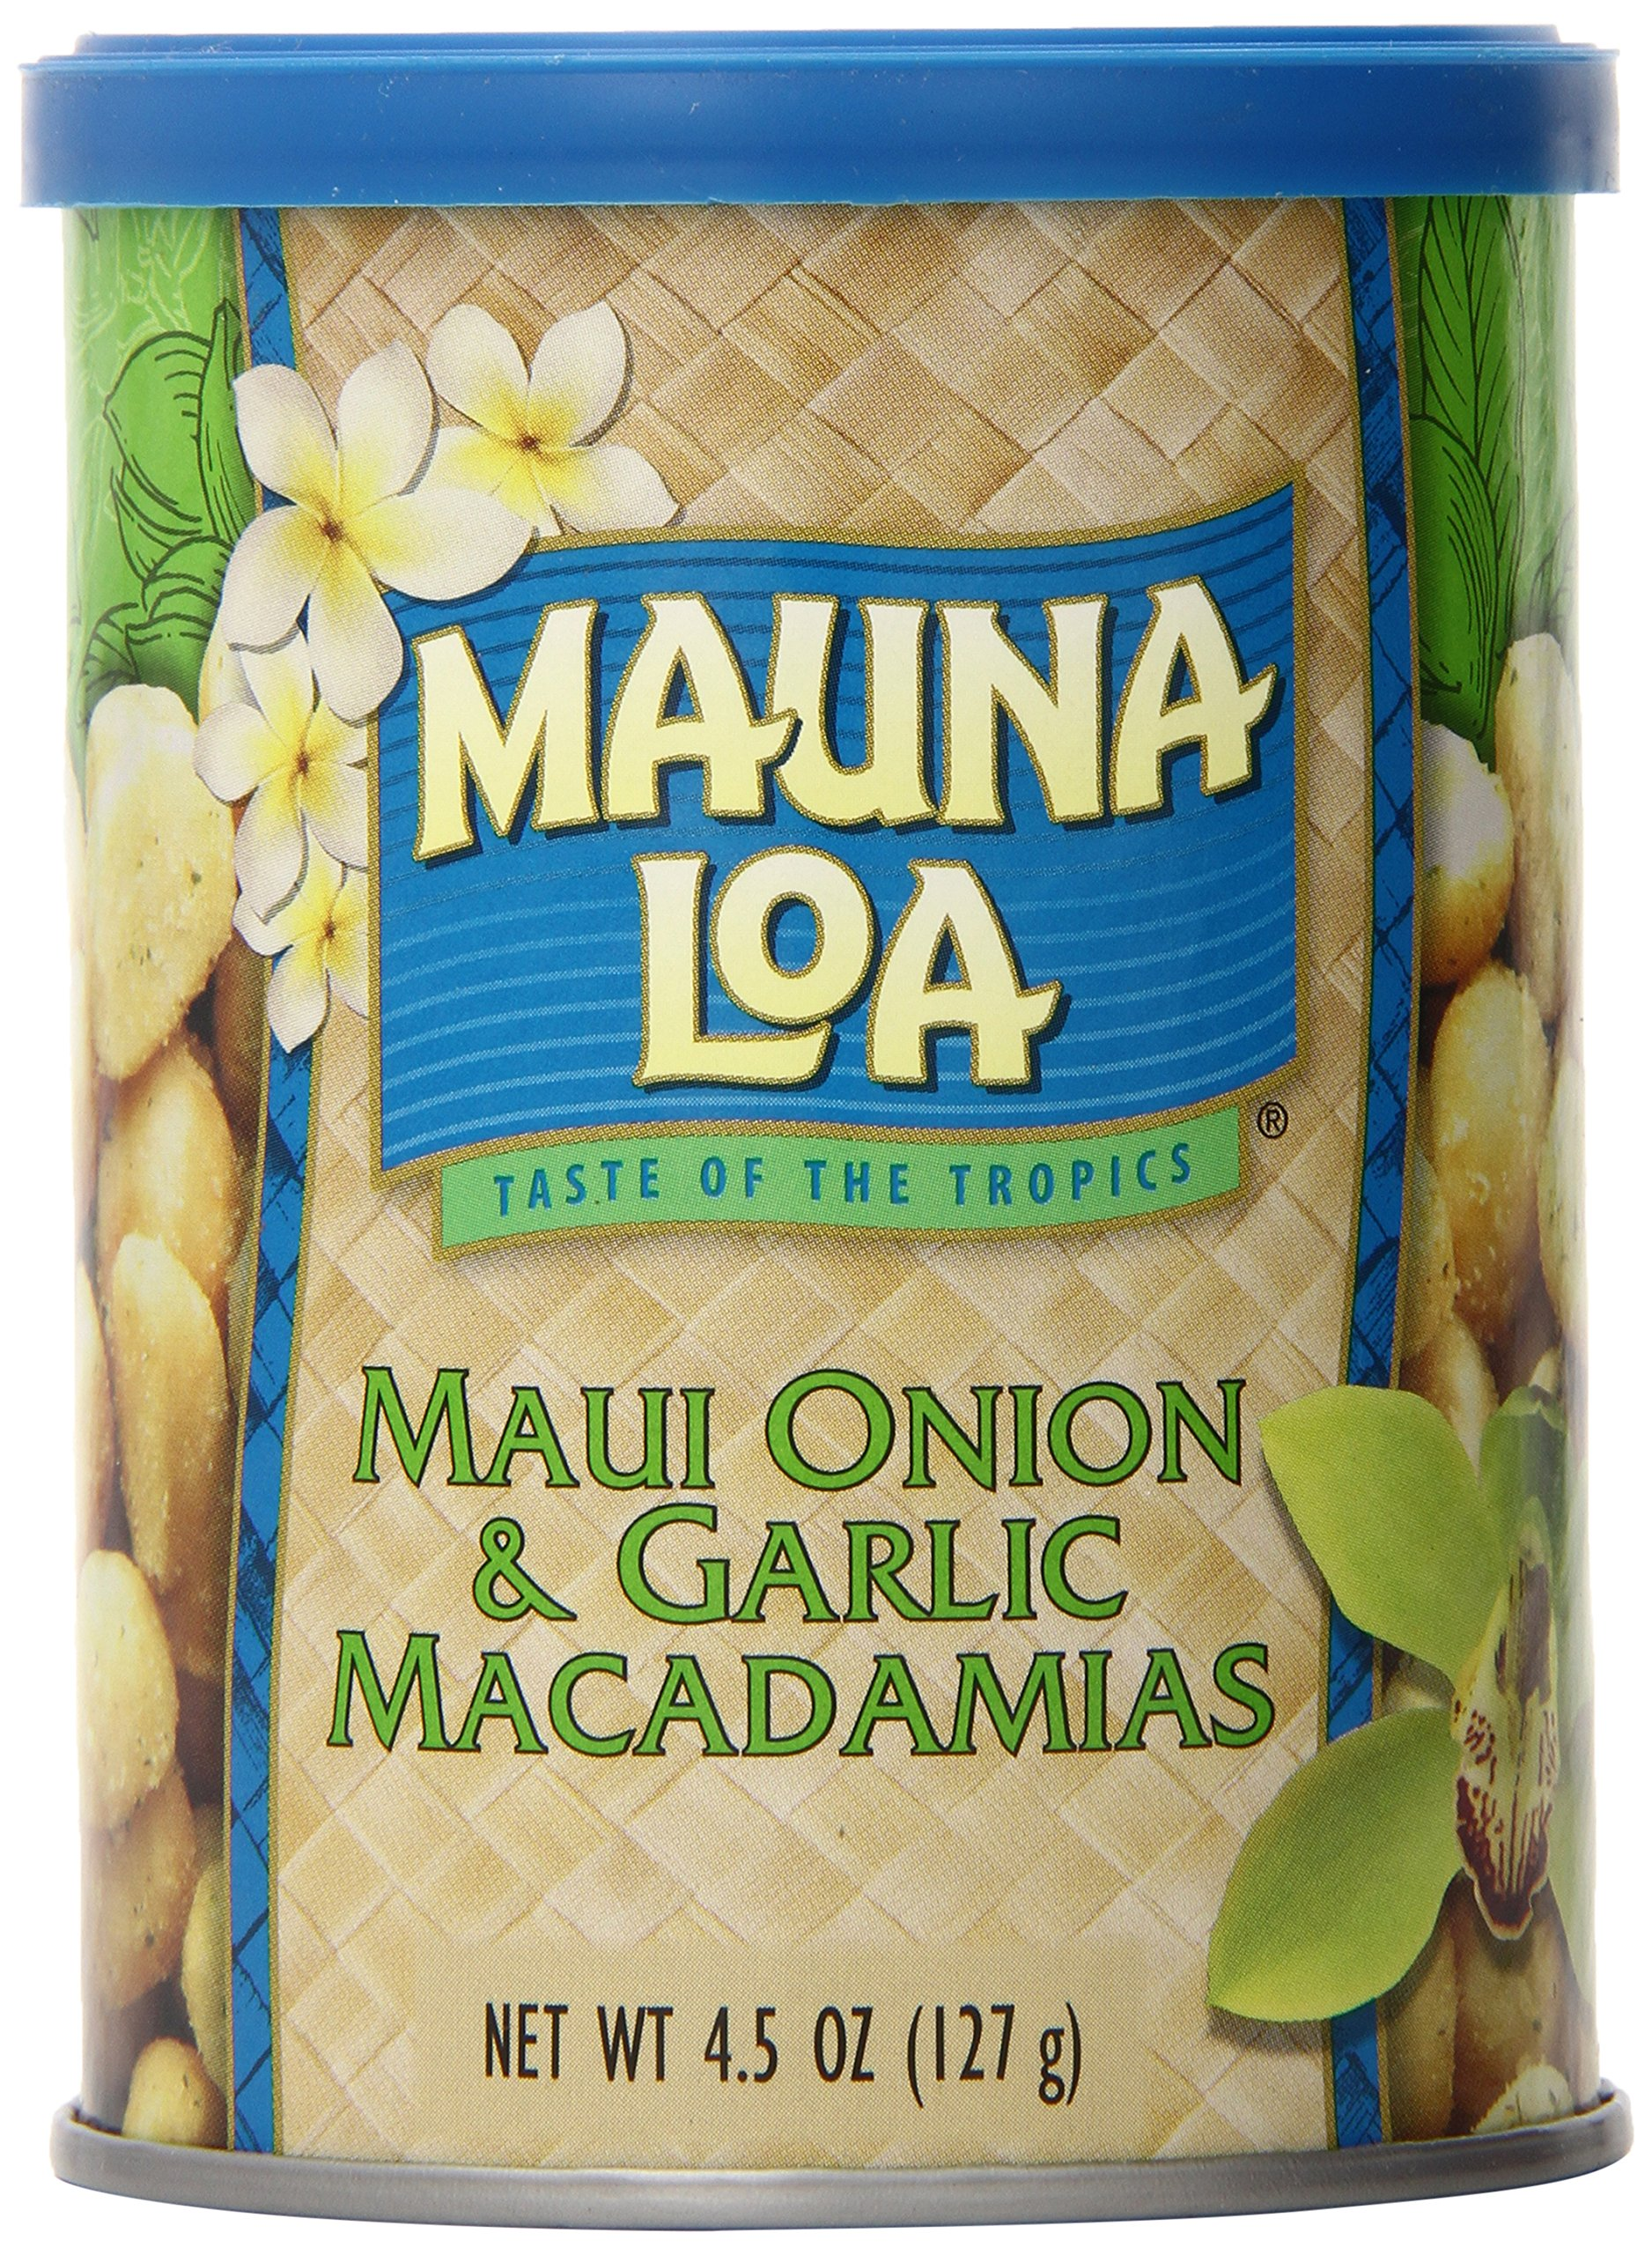 Mauna Loa Maui Onion & Garlic Macadamia Nuts, 4.5-Ounce Can (Pack Of 12) by Mauna Loa